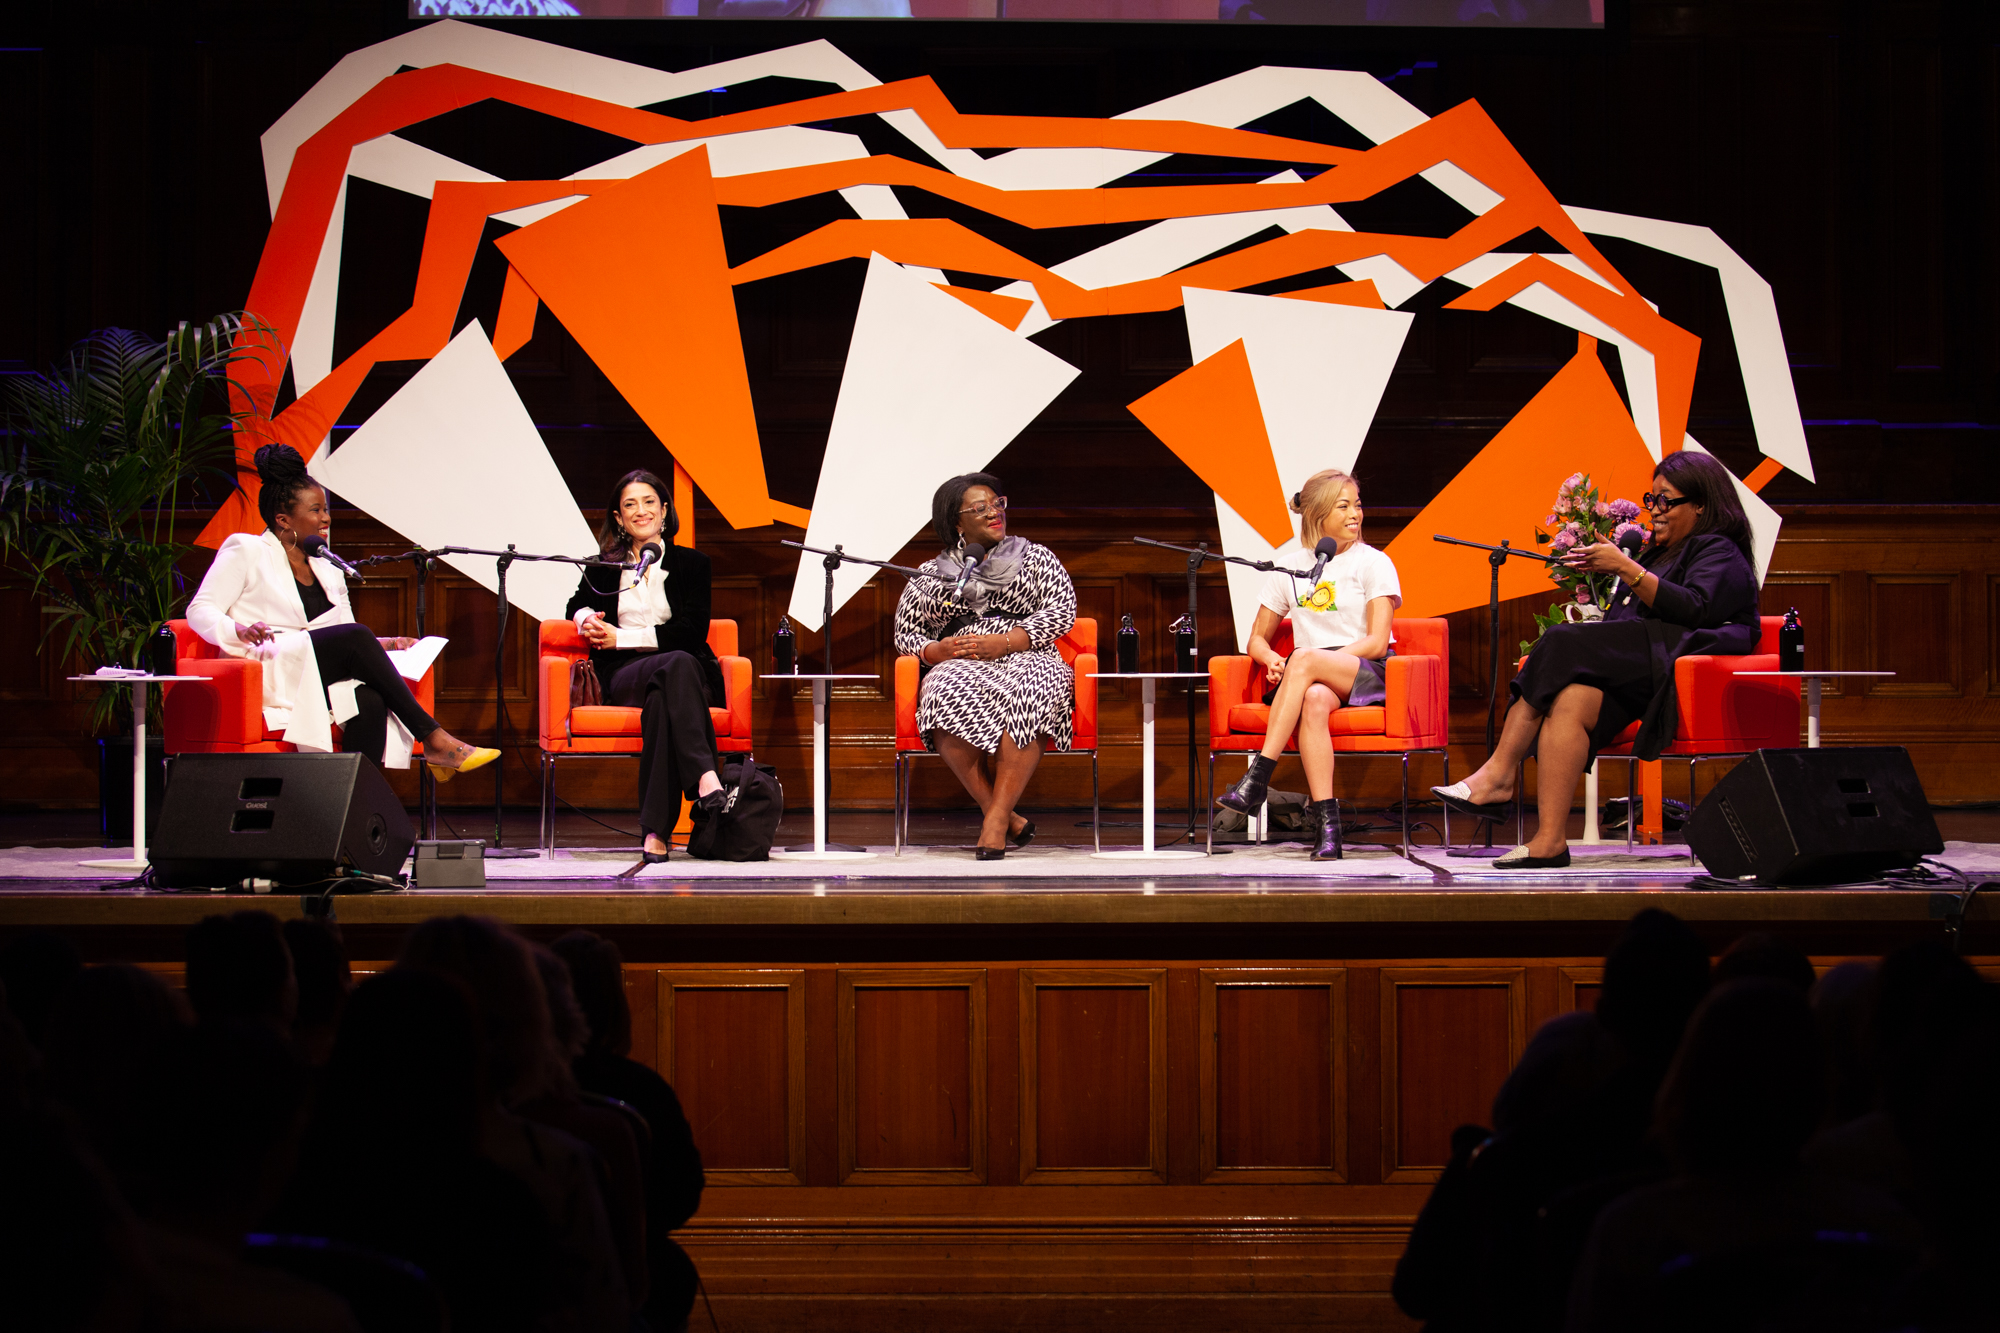 Photo of the panel – Santilla Chingaipe, Fatima Bhutto, Tressie McMillan Cottom, Jia Tolentino and Aminatou Sow